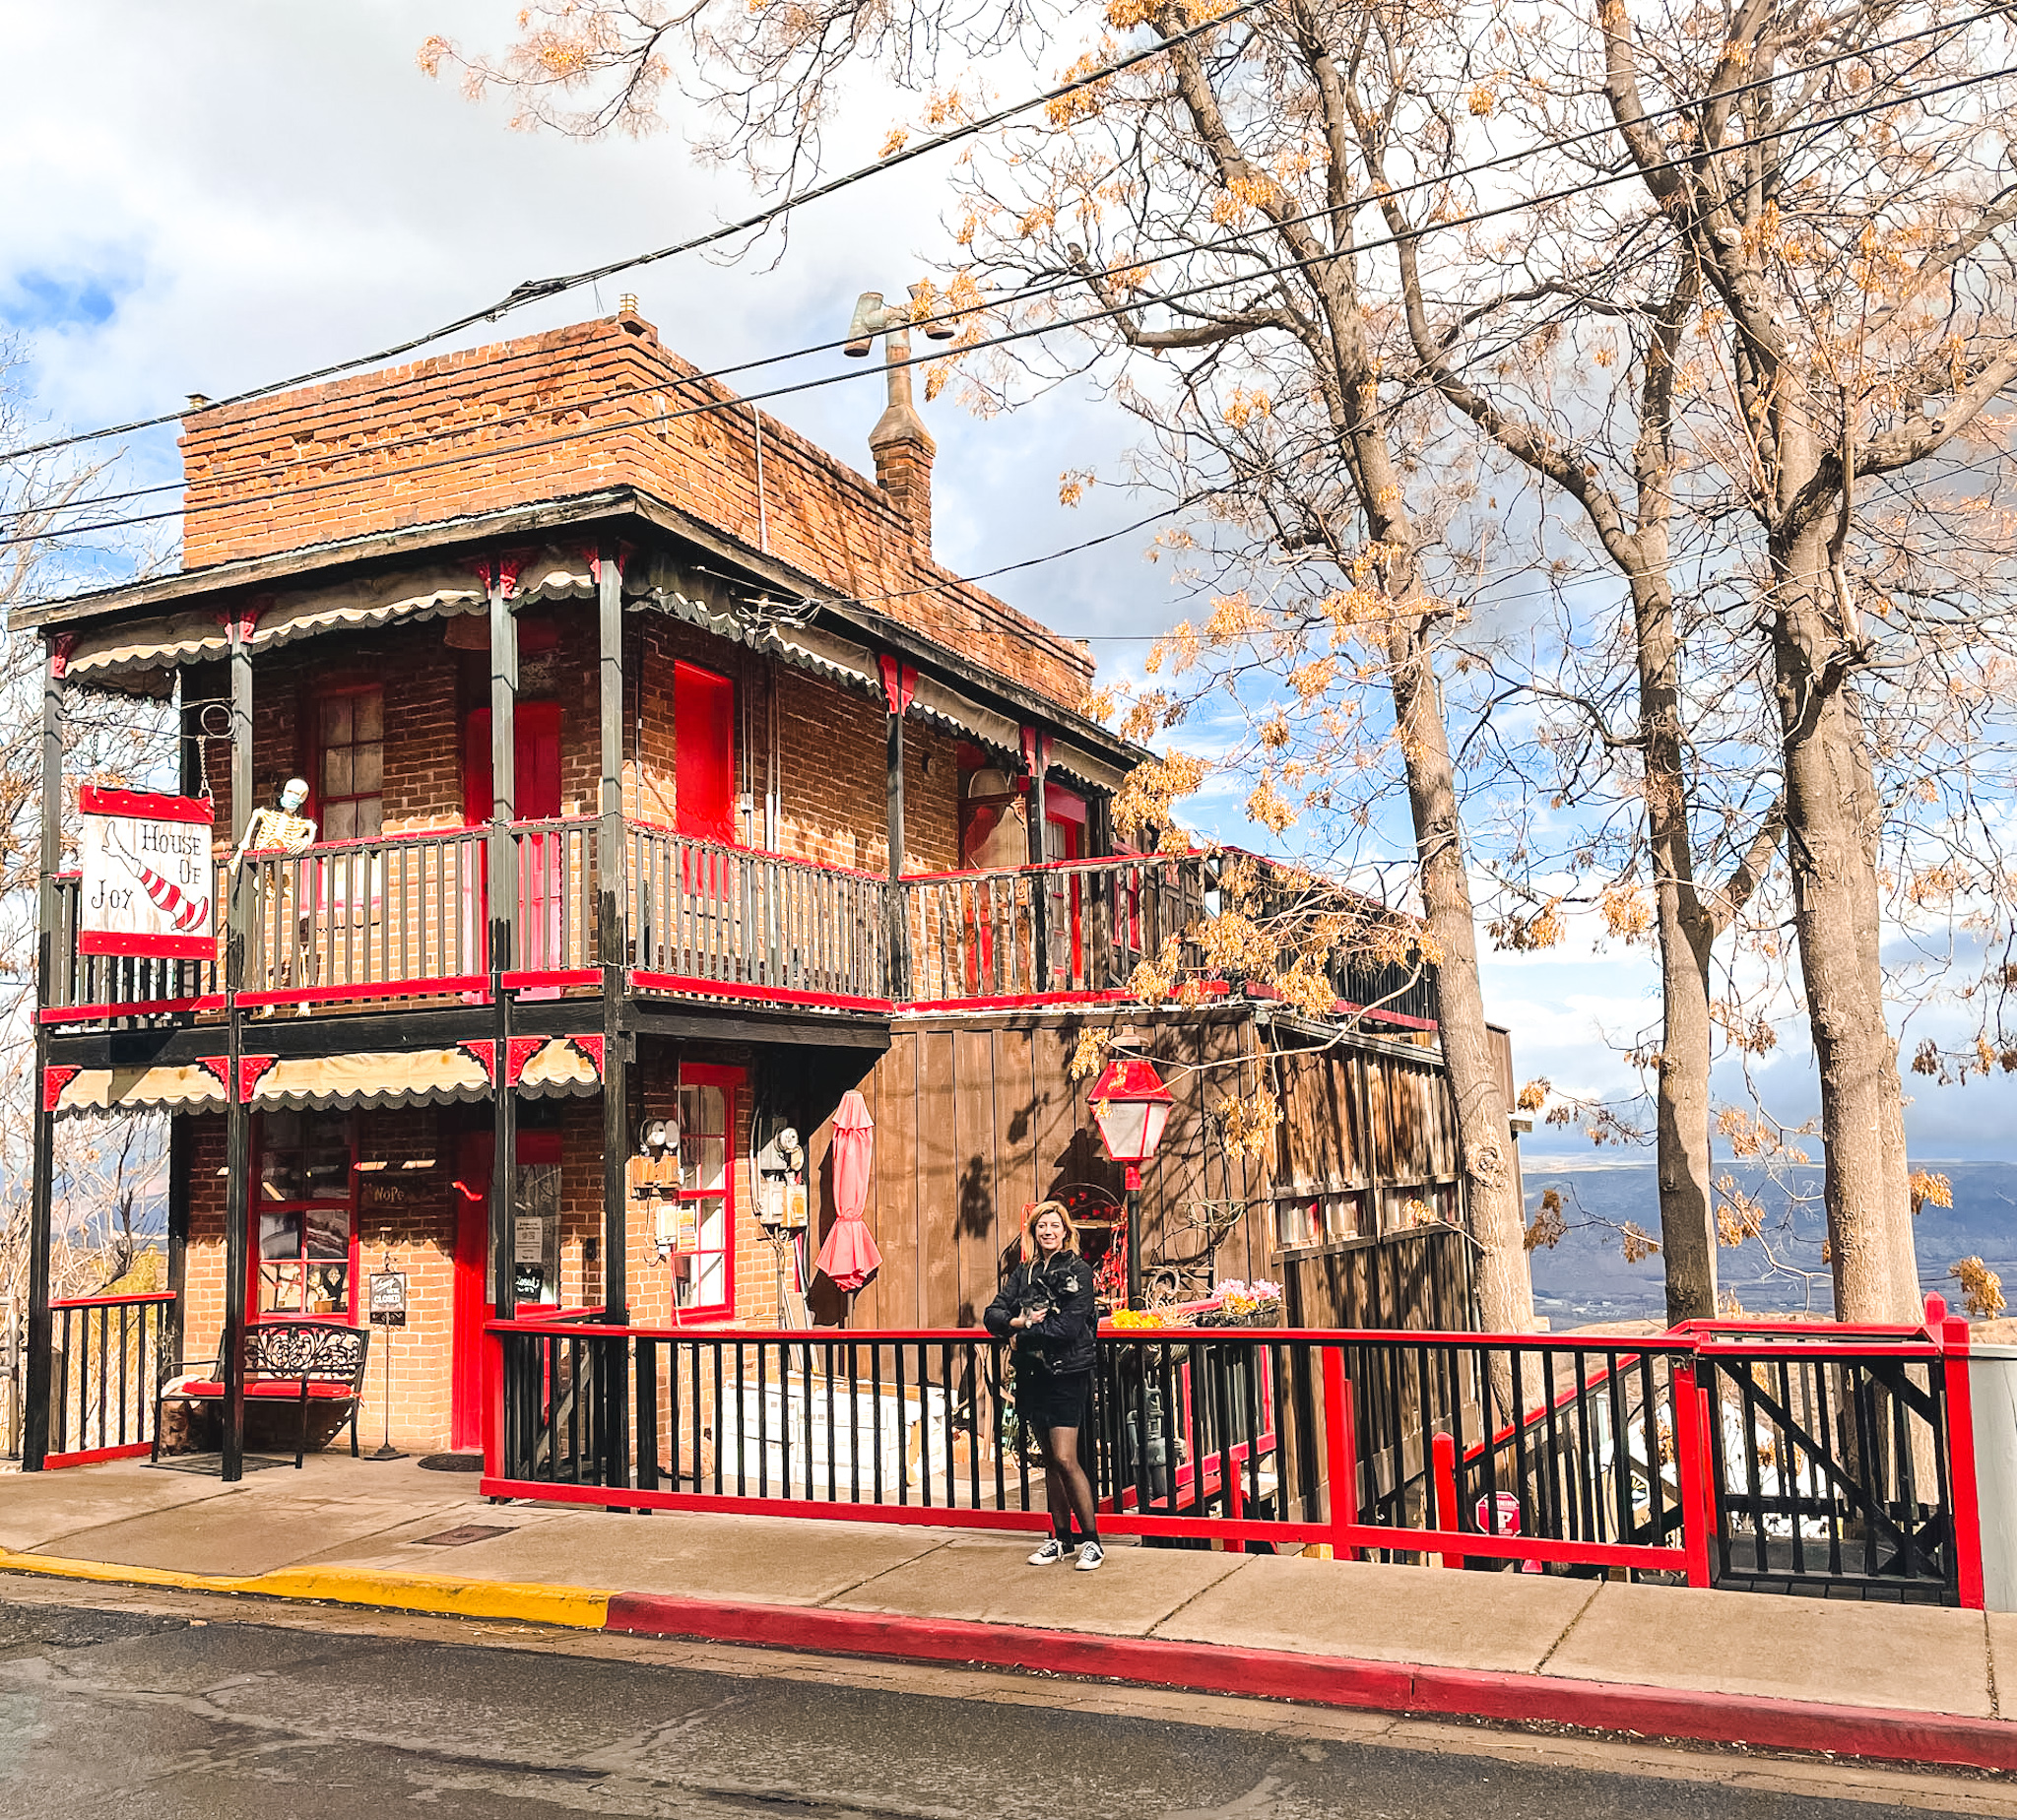 Things to do in Jerome Arizona